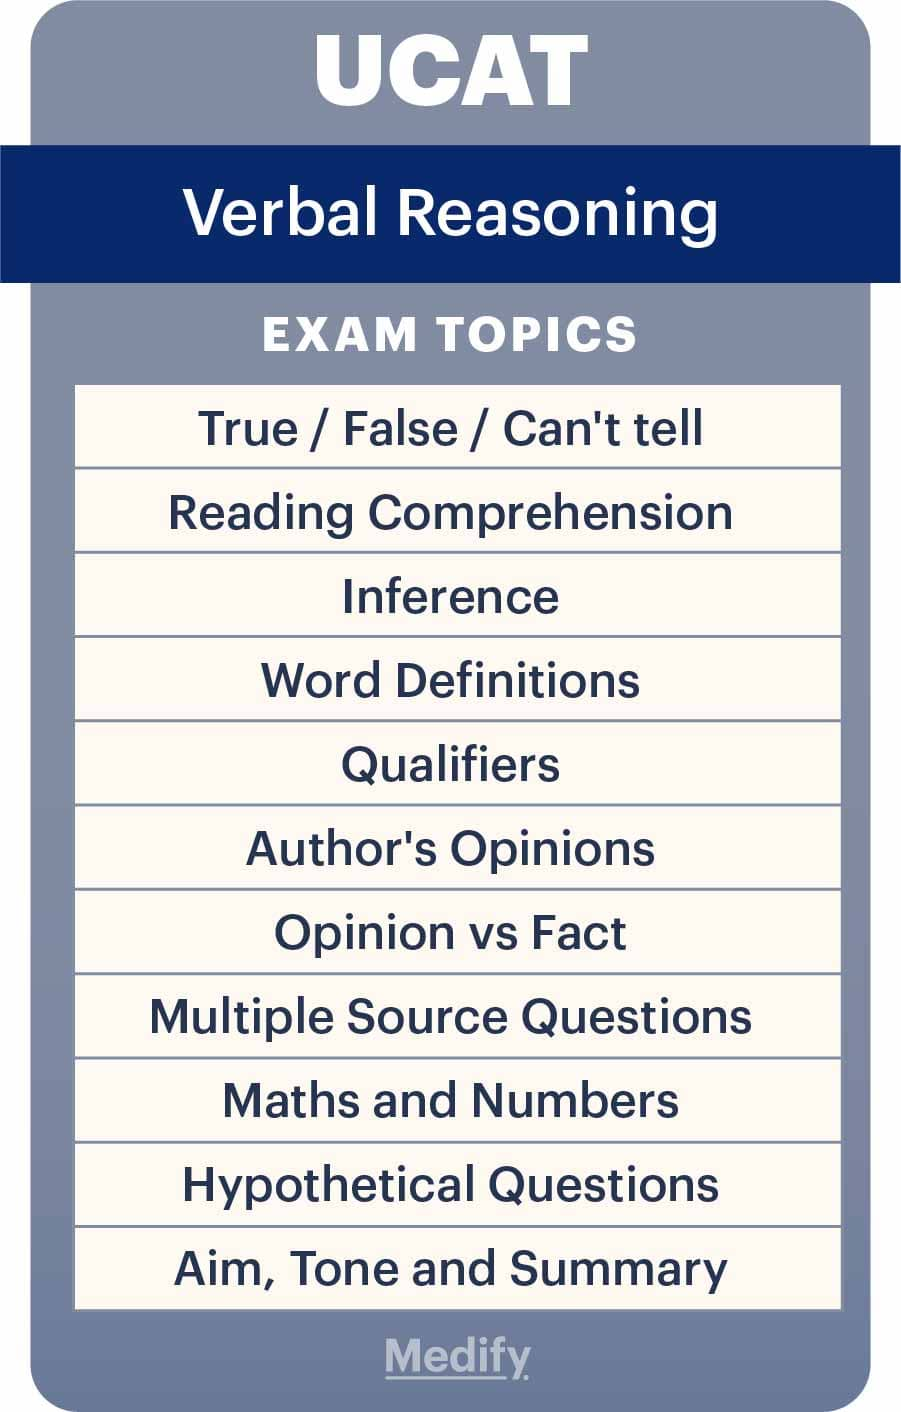 UCAT Verbal Reasoning (VR) sections infographic